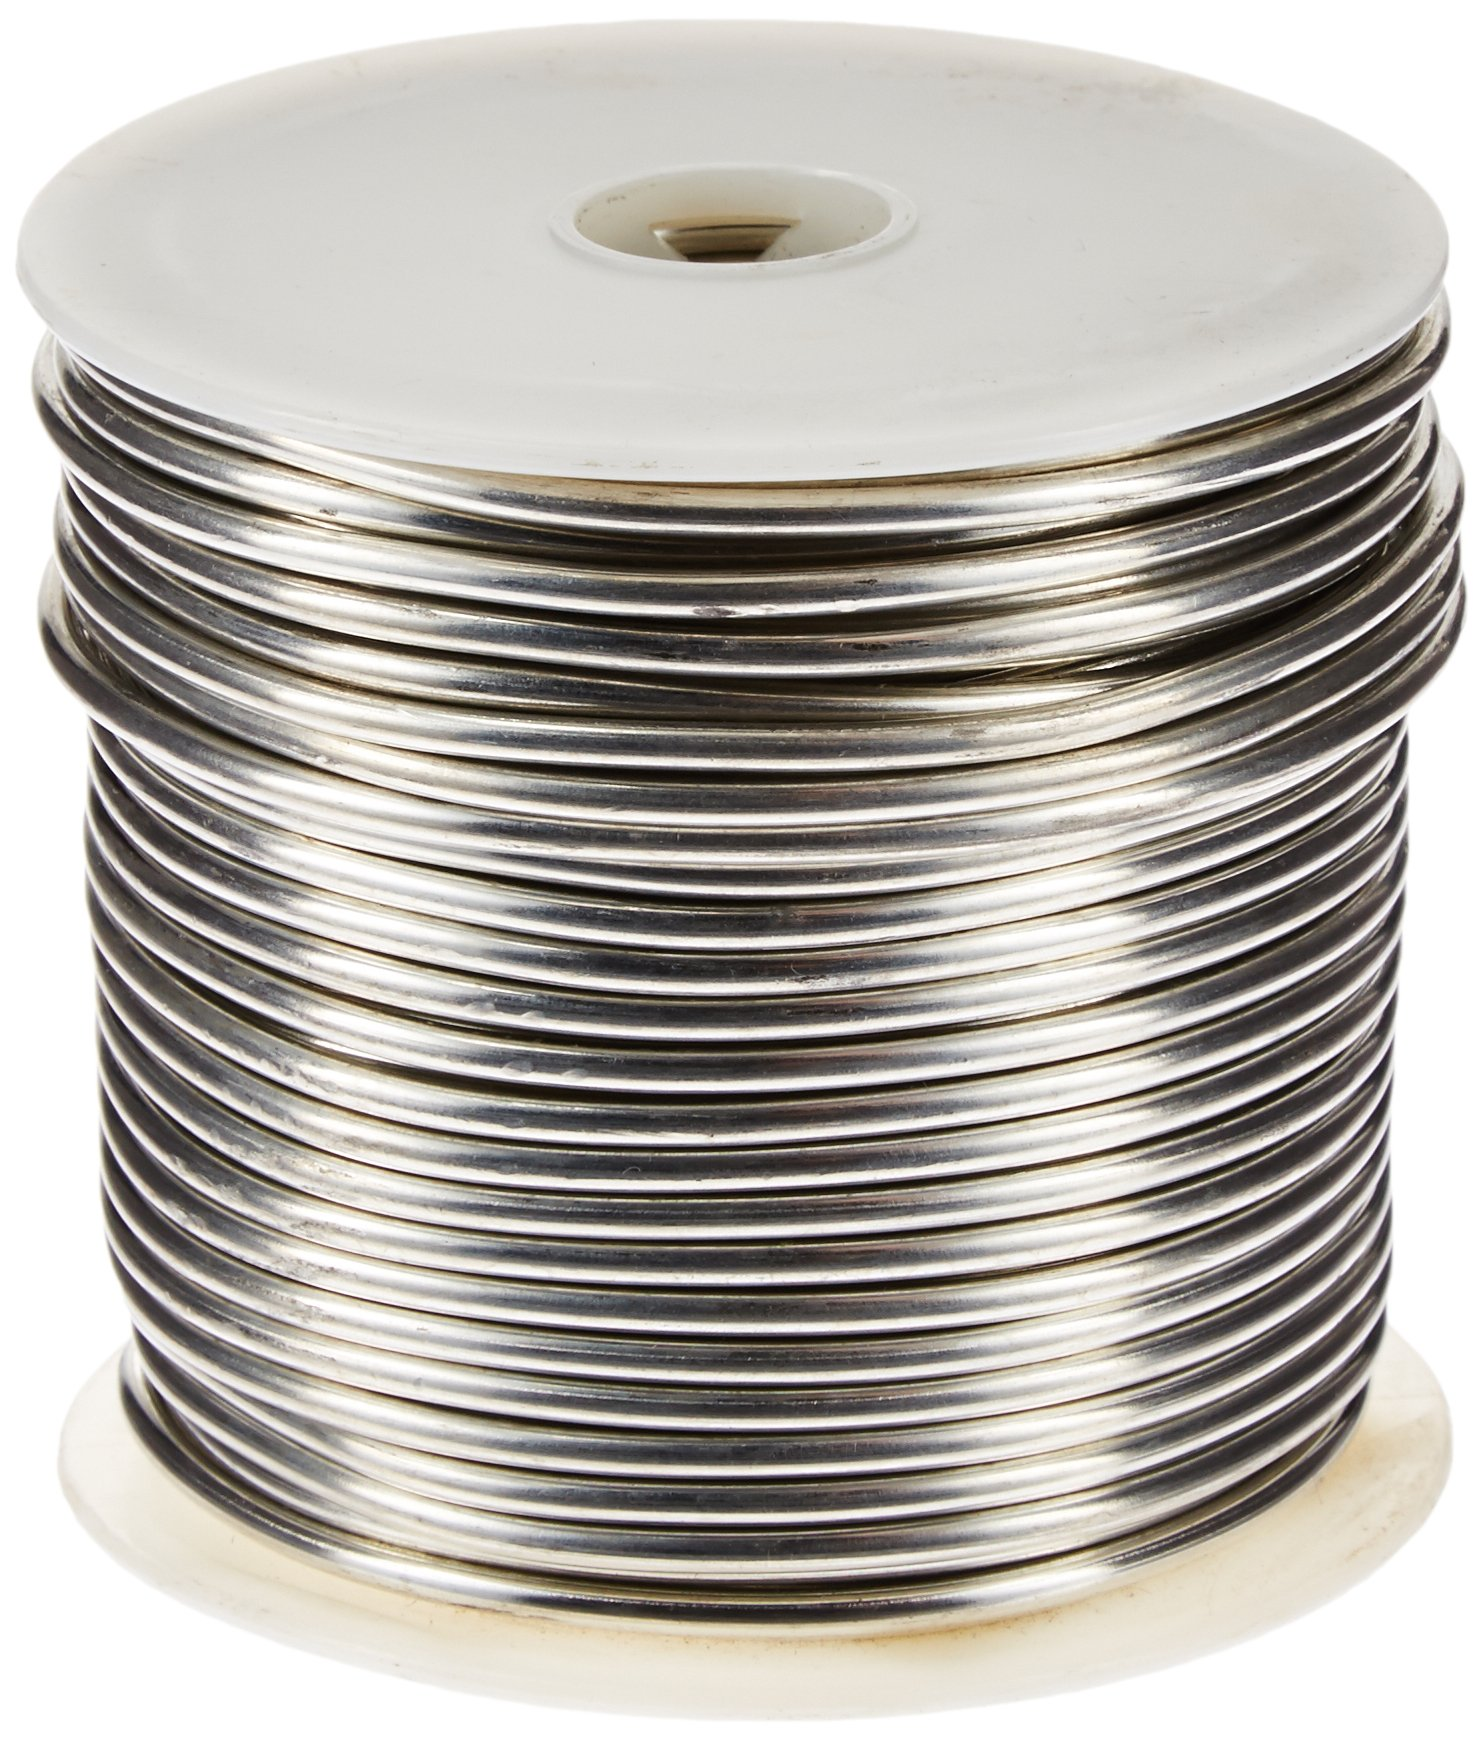 Worthington 327960.0 Lead Free Solder, 5 lb.